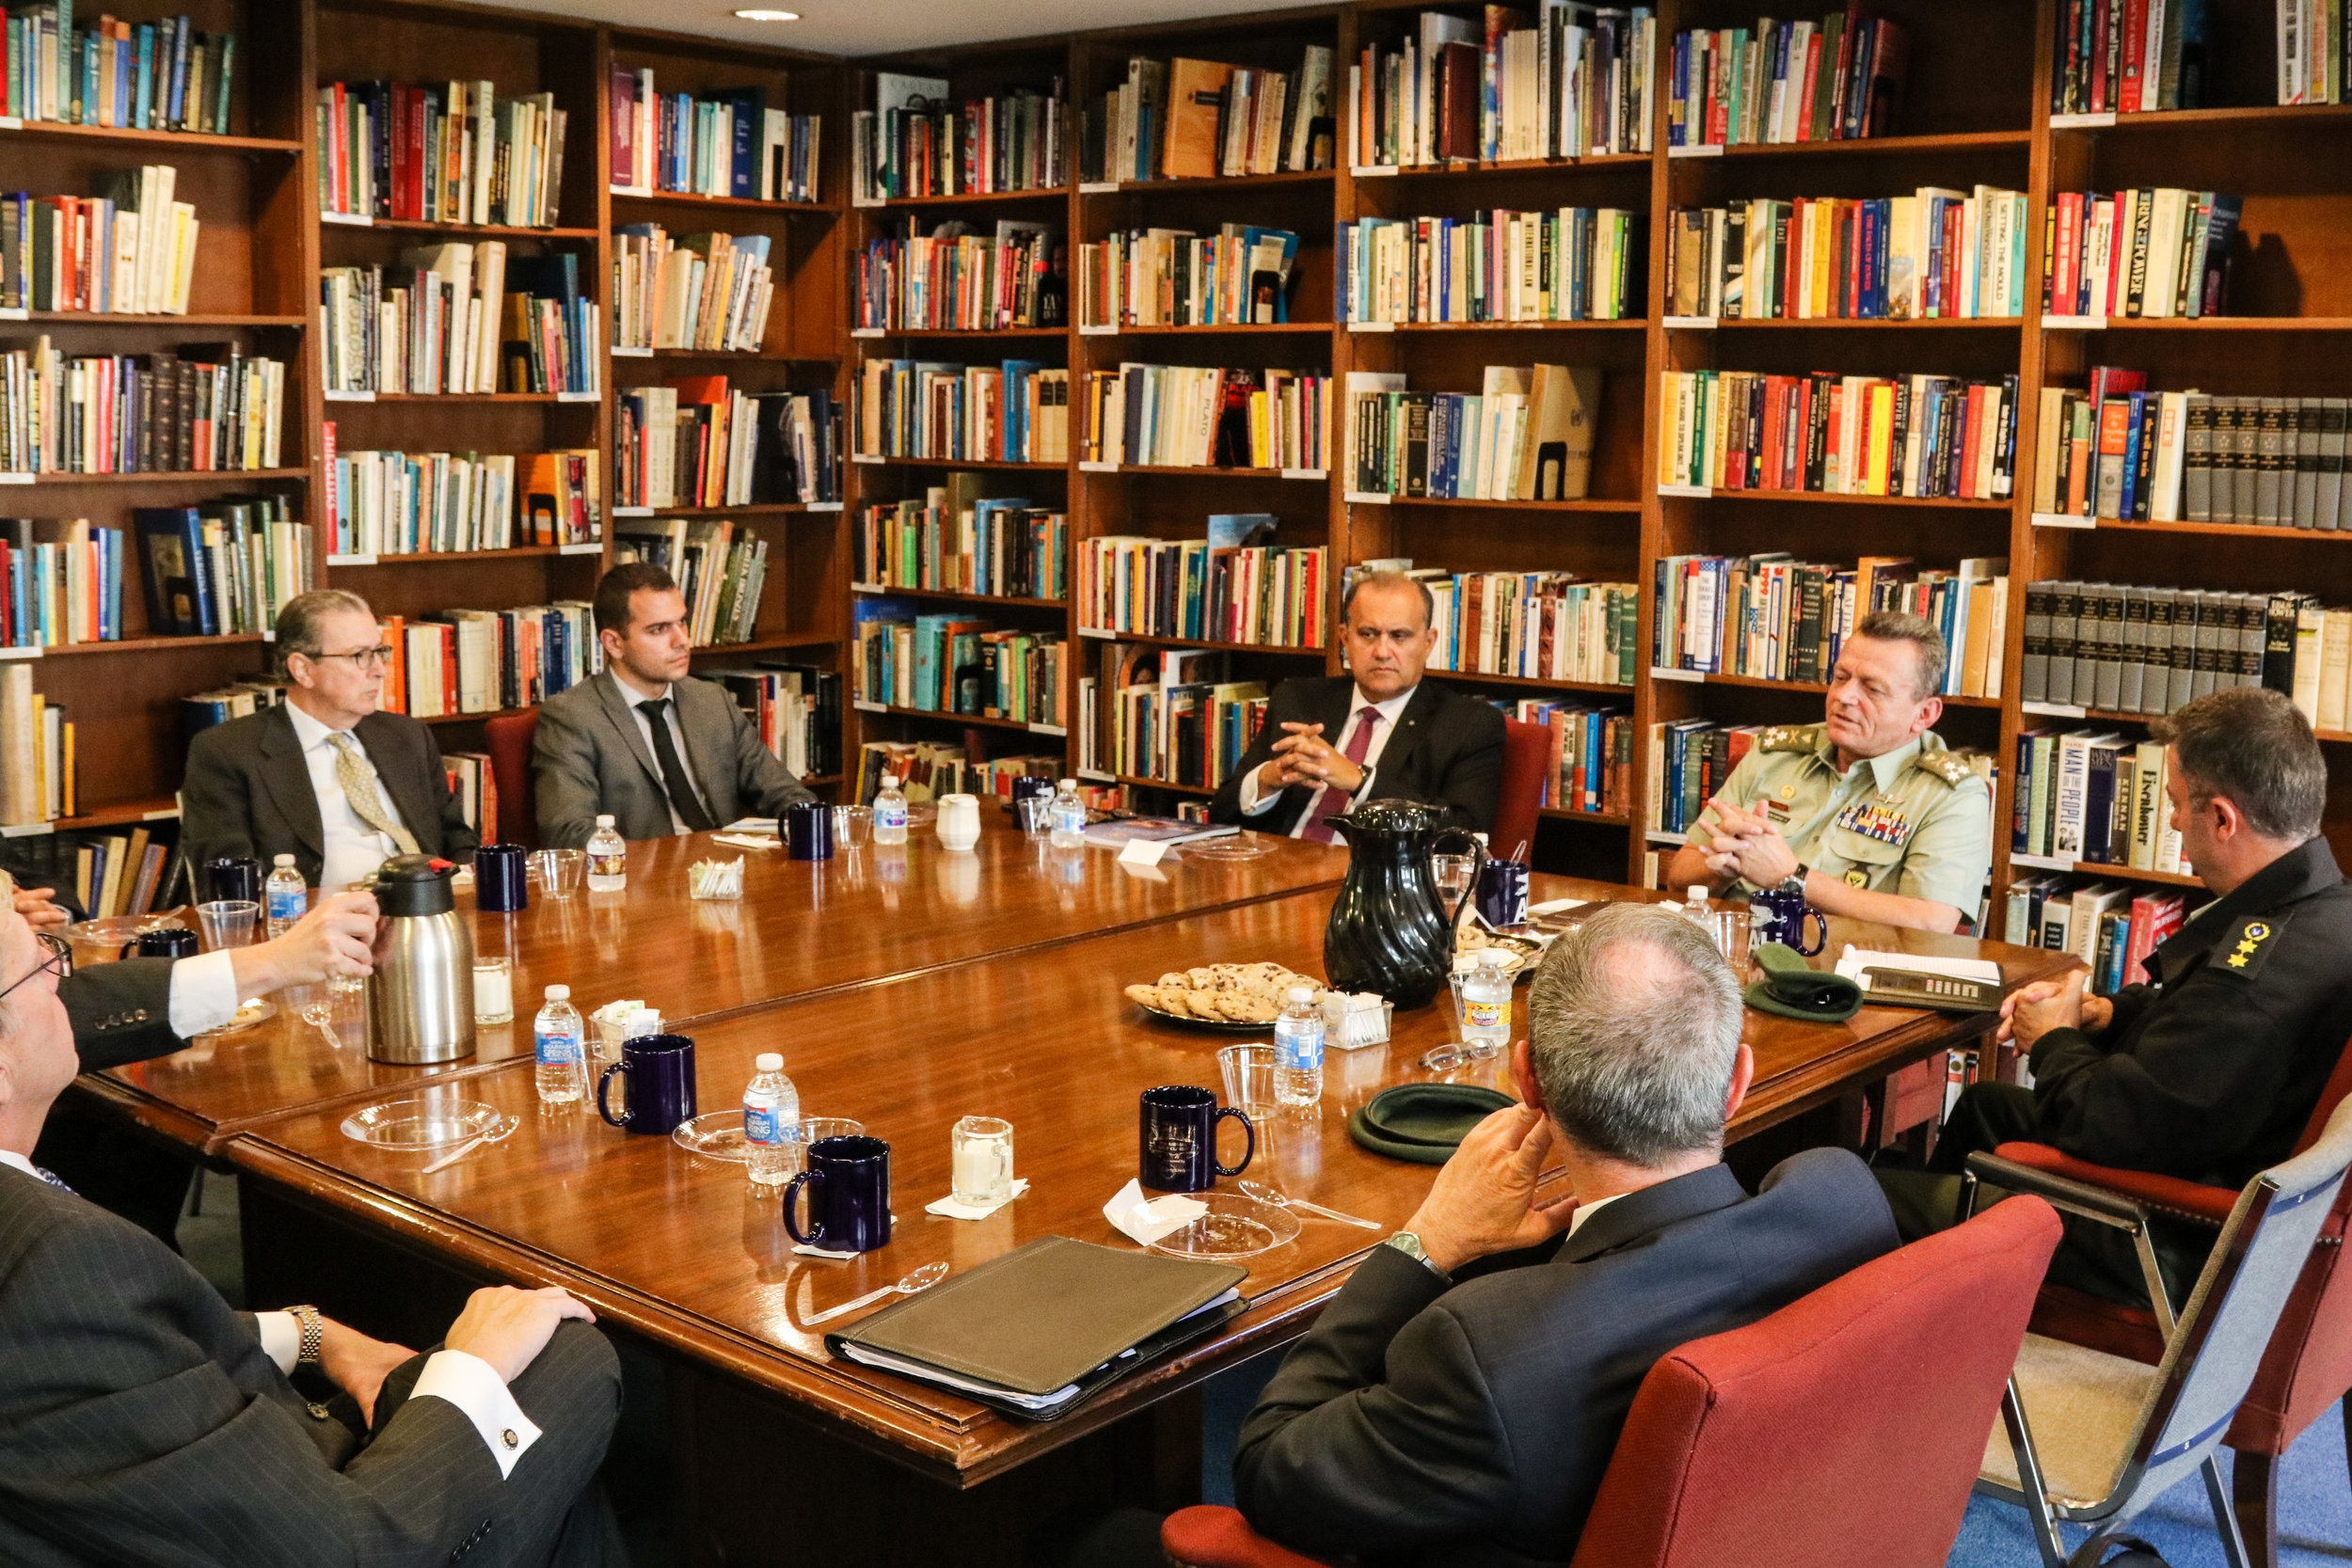 Lt. General Leontaris discusses the improved relations between Cyprus and the United States during a visit to Hellenic House.